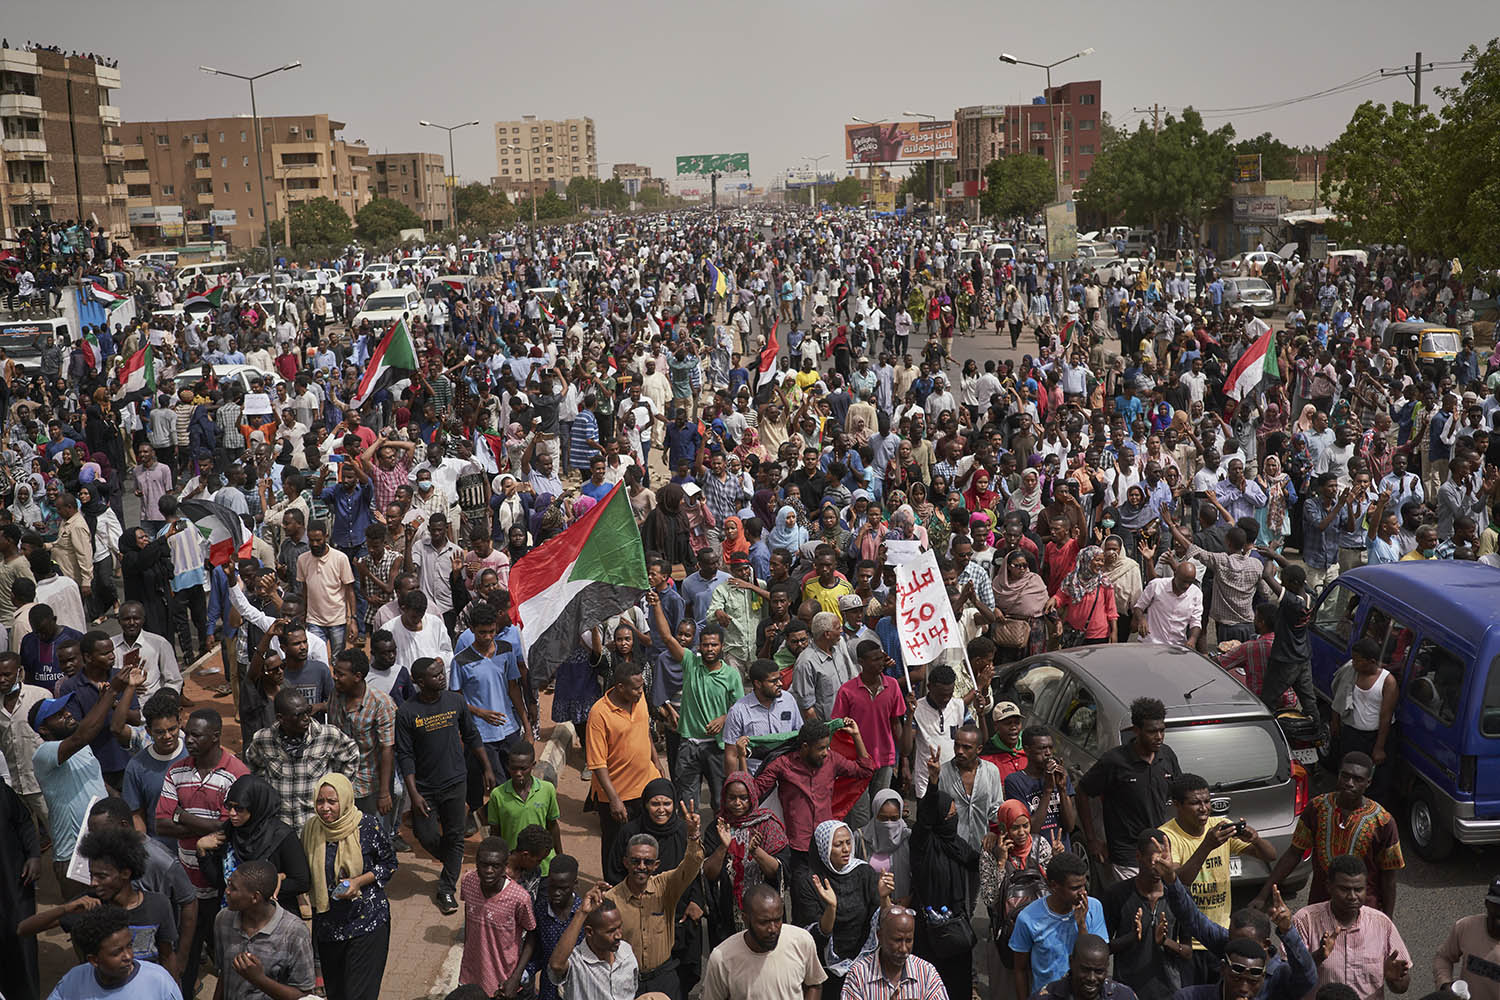 Protesters call for a civilian government during large protests in Khartoum on June 30.